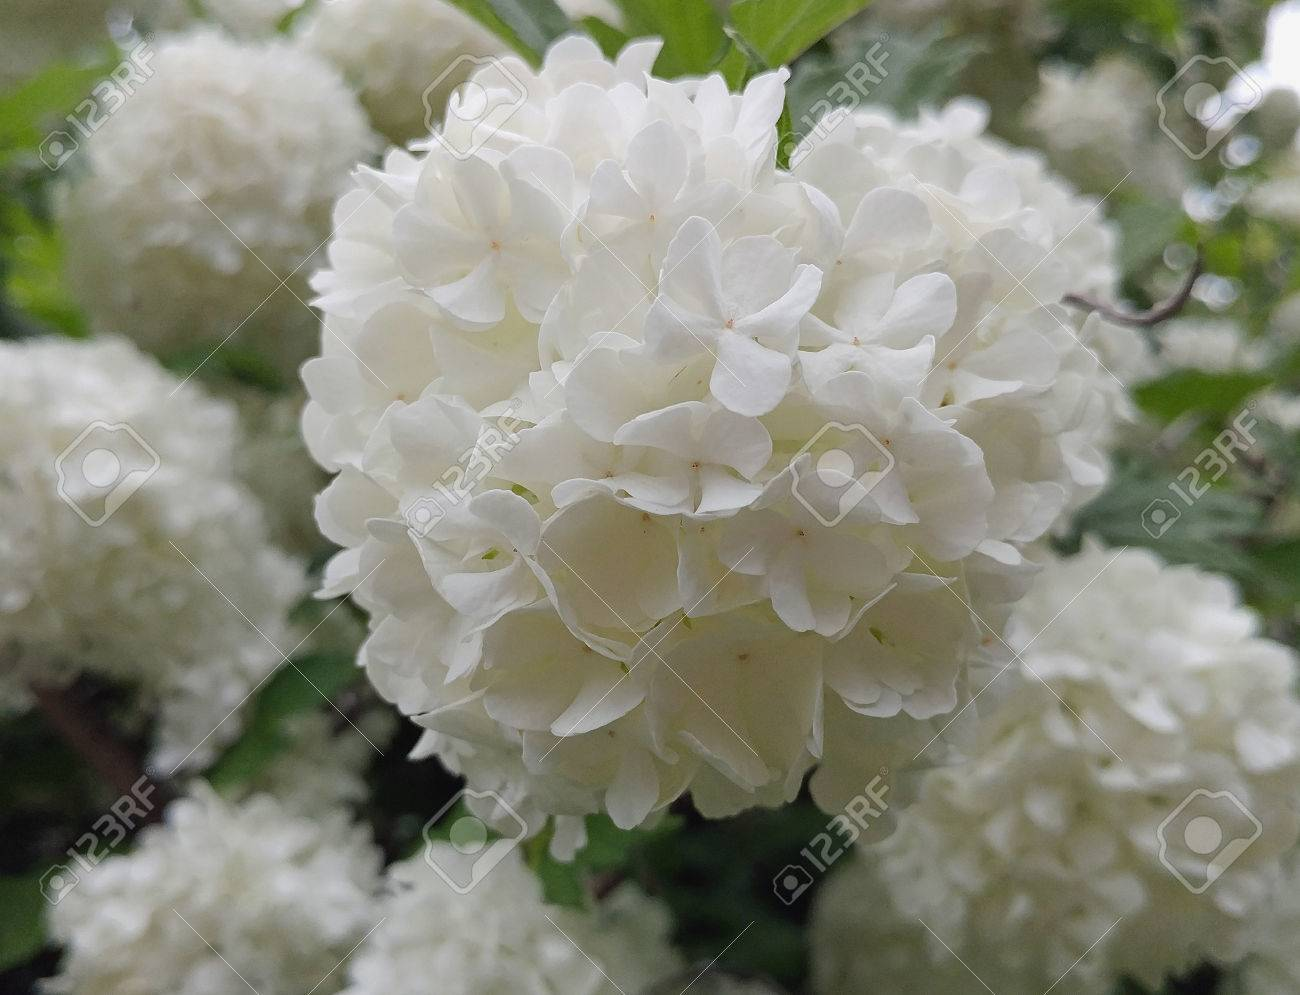 List Of Synonyms And Antonyms Of The Word Snowball Flowers